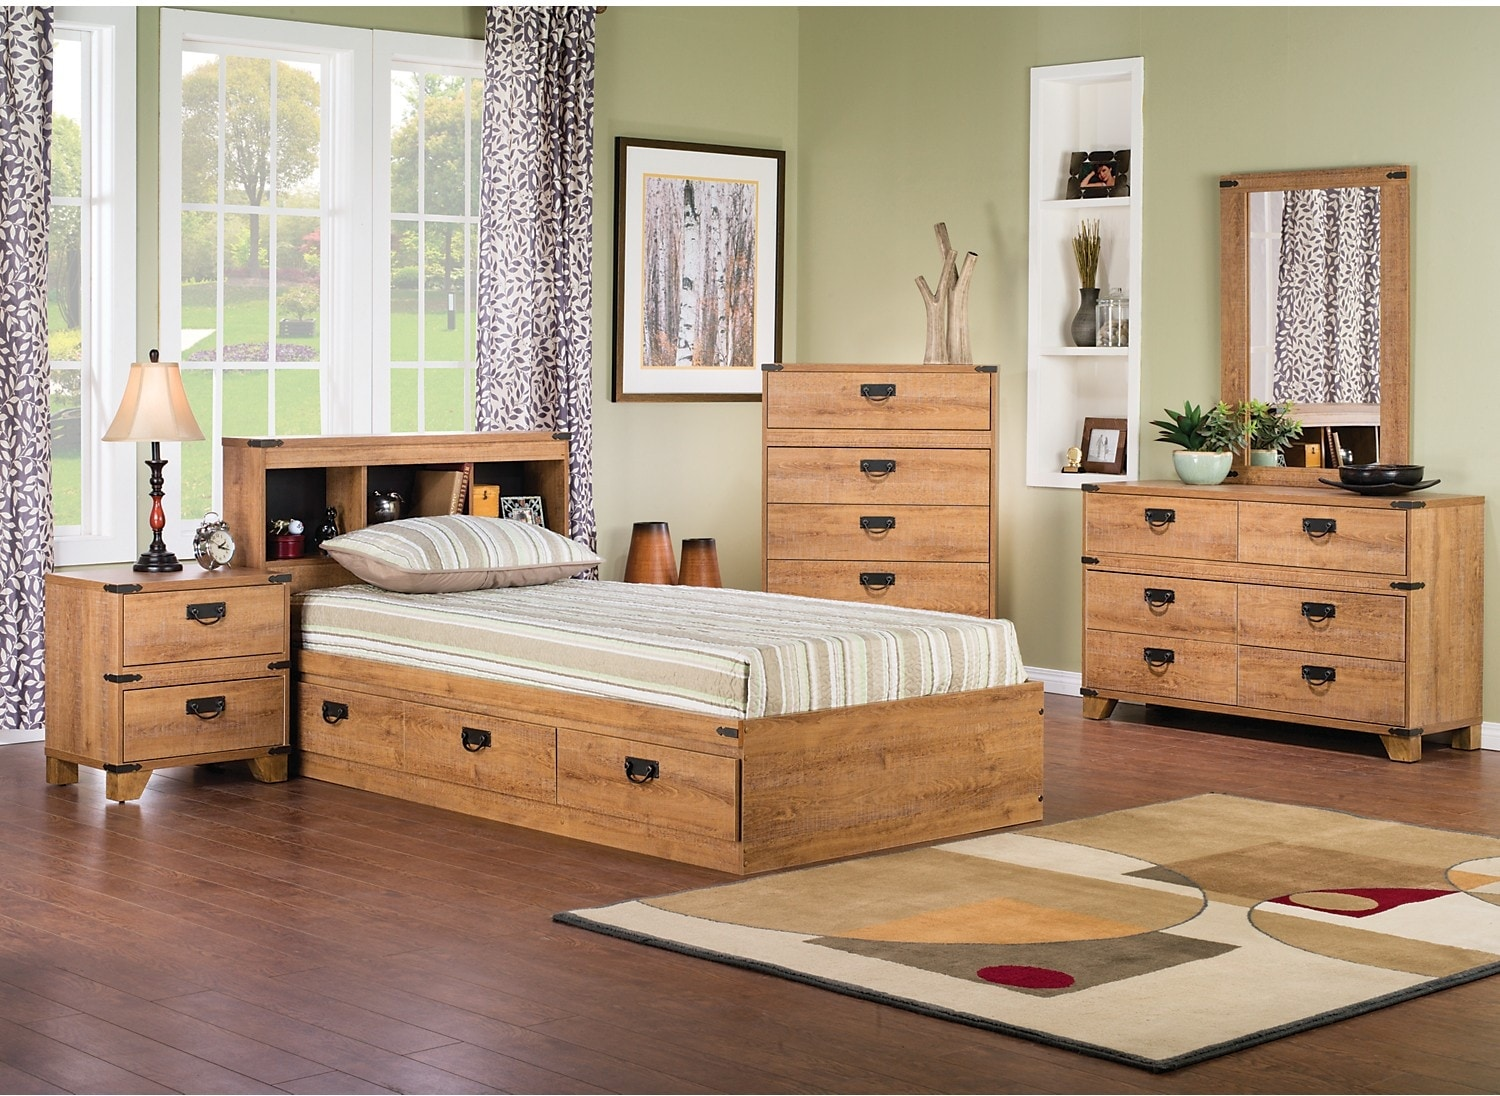 Kids Furniture - Driftwood 7-Piece Mates Bedroom Package